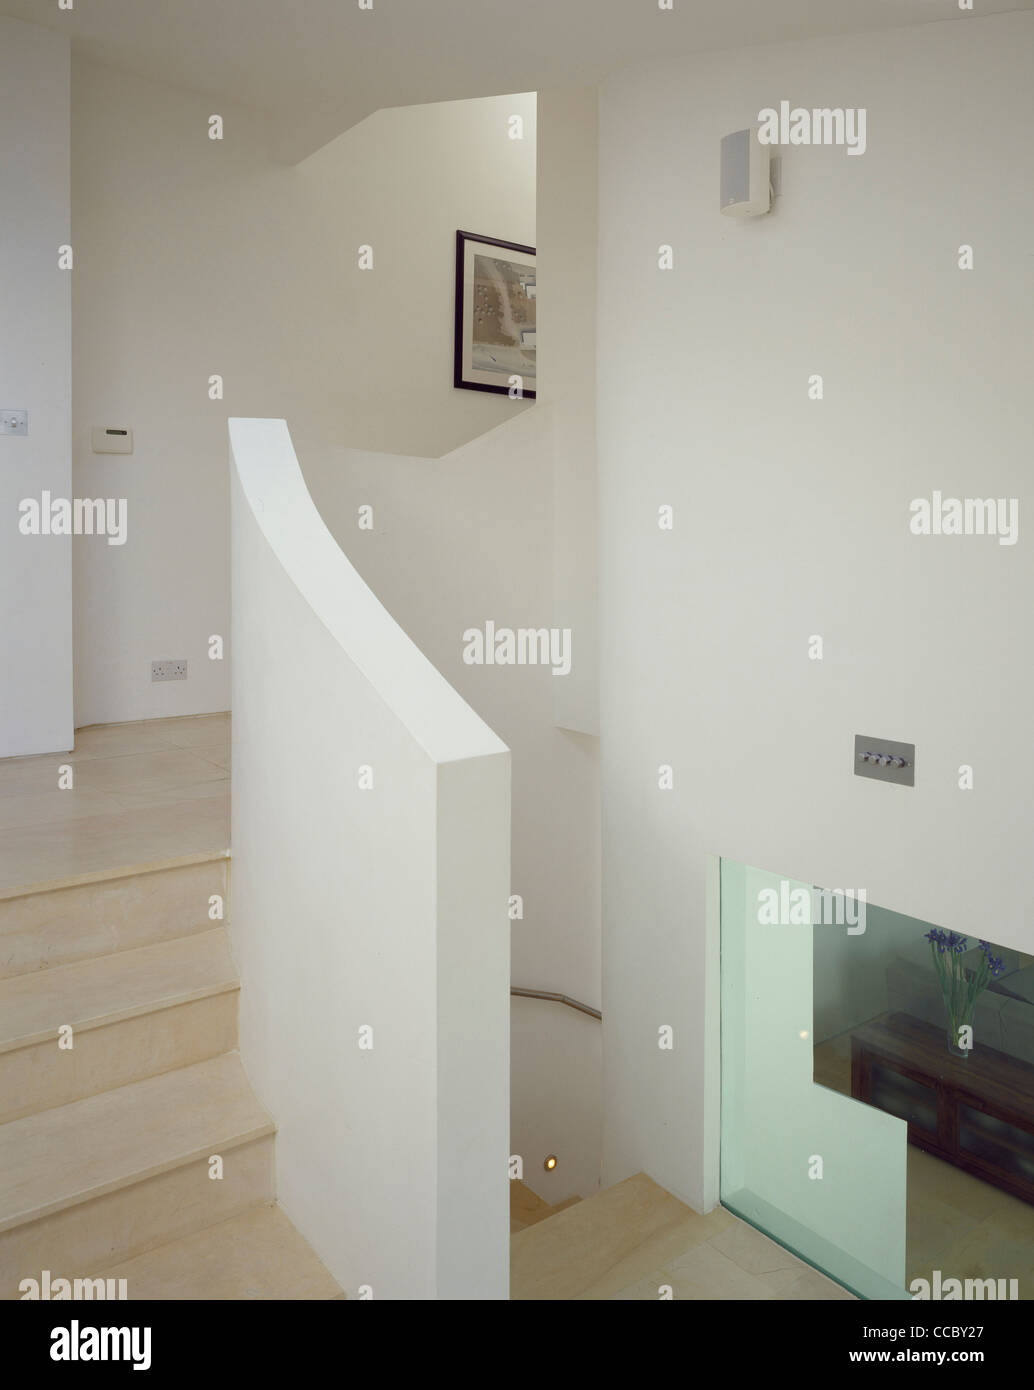 PRIVATE HOUSE STAIRS - Stock Image